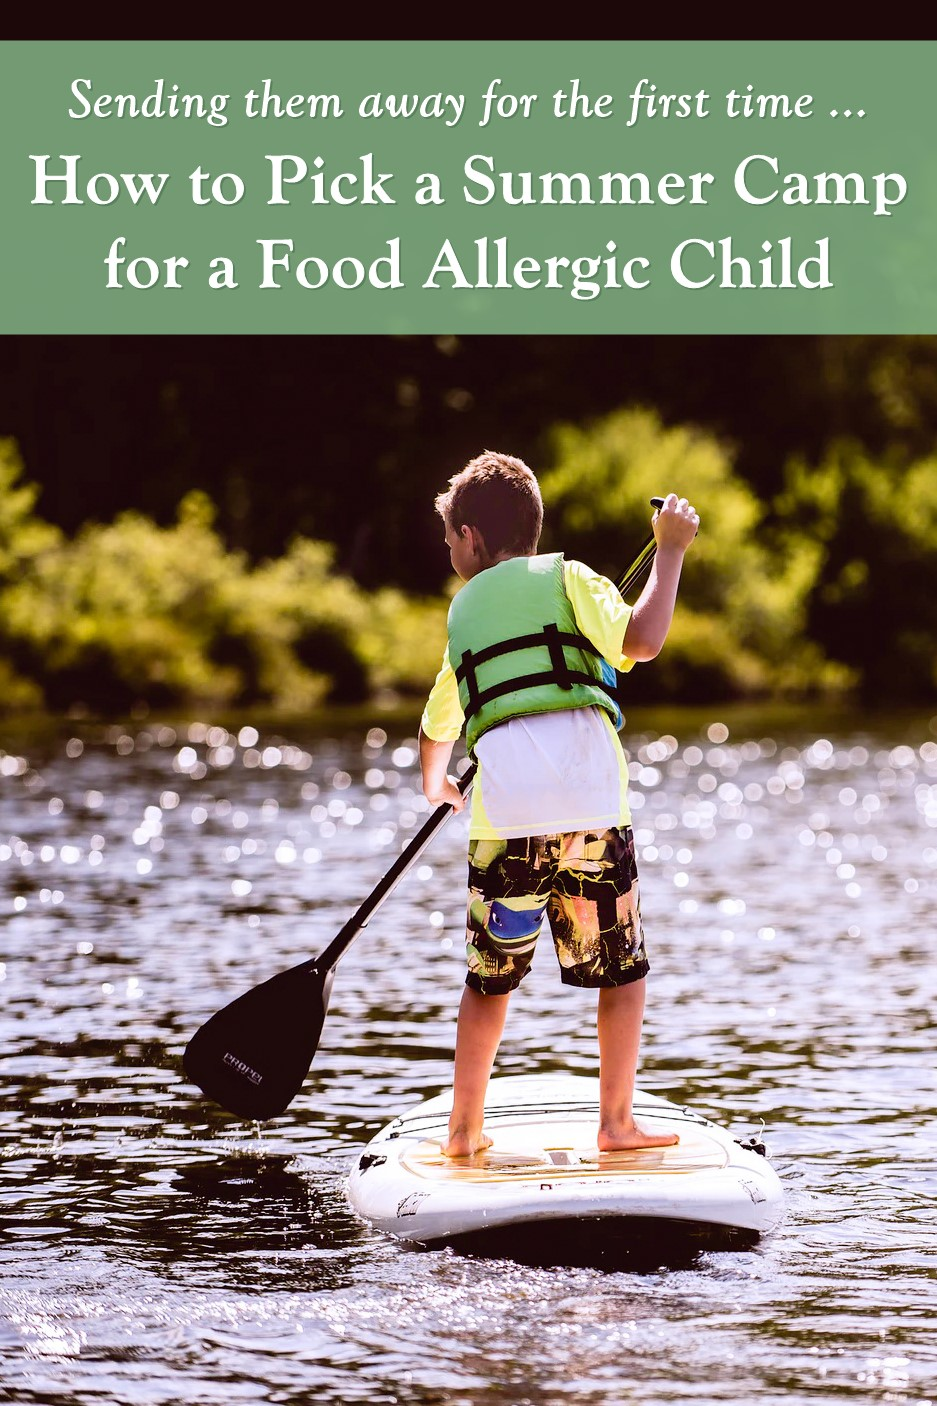 How to Pick a Summer Camp for Your Food Allergic Child - Tips, Starting Points, Questions to Ask, etc.